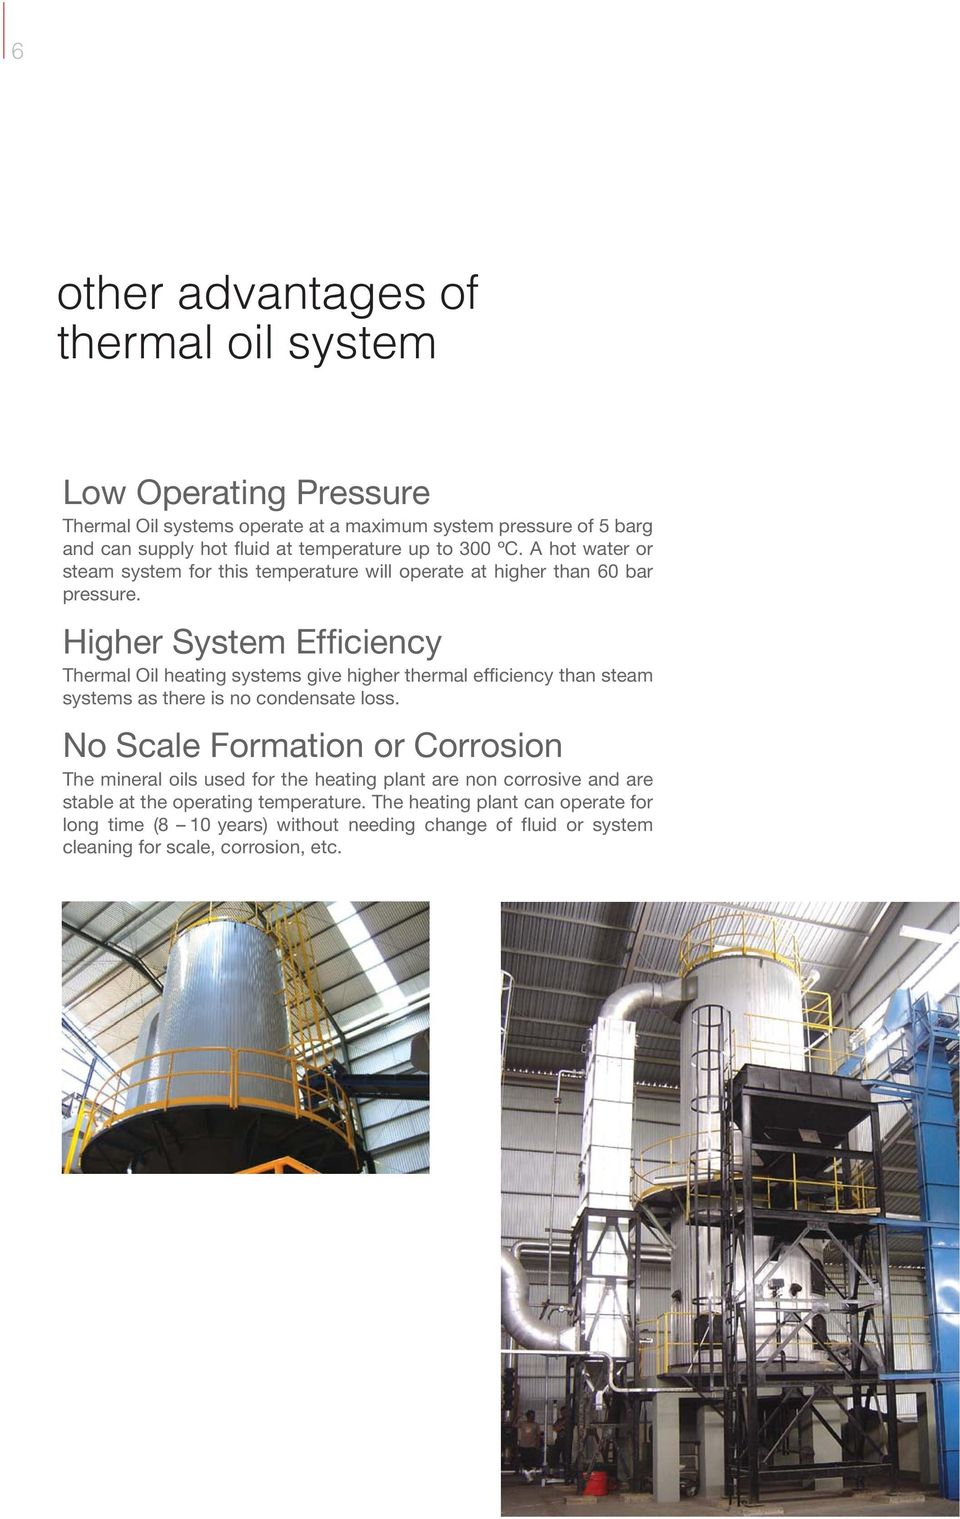 Higher System Efficiency Thermal Oil heating systems give higher thermal efficiency than steam systems as there is no condensate loss.